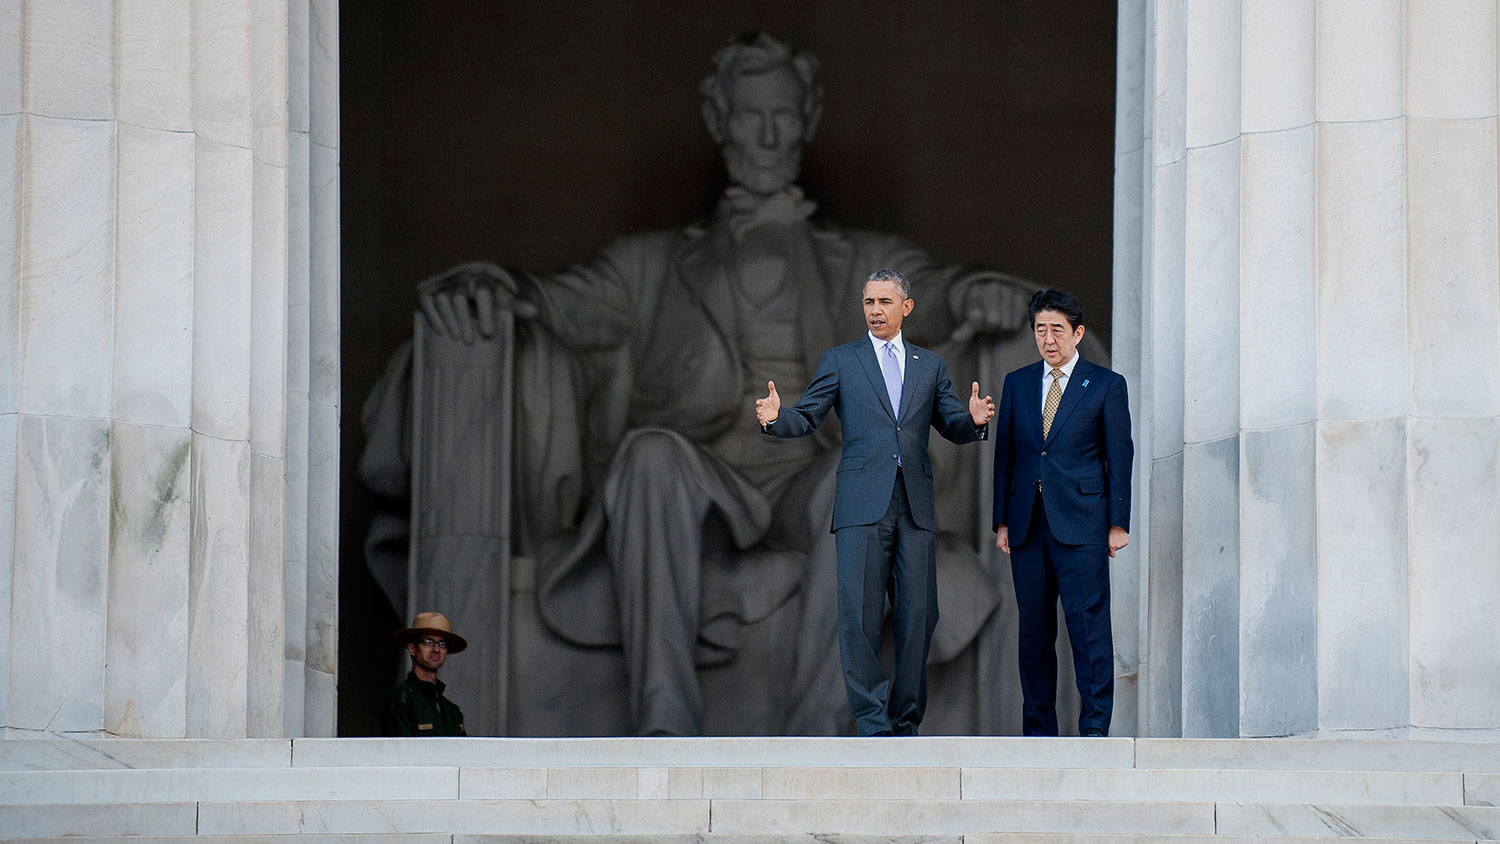 obamas essay on lincoln What are the similarities and differences between abraham lincoln and franklin roosevelt what are the differences and similarities between abraham lincoln and nelson mandela what will.